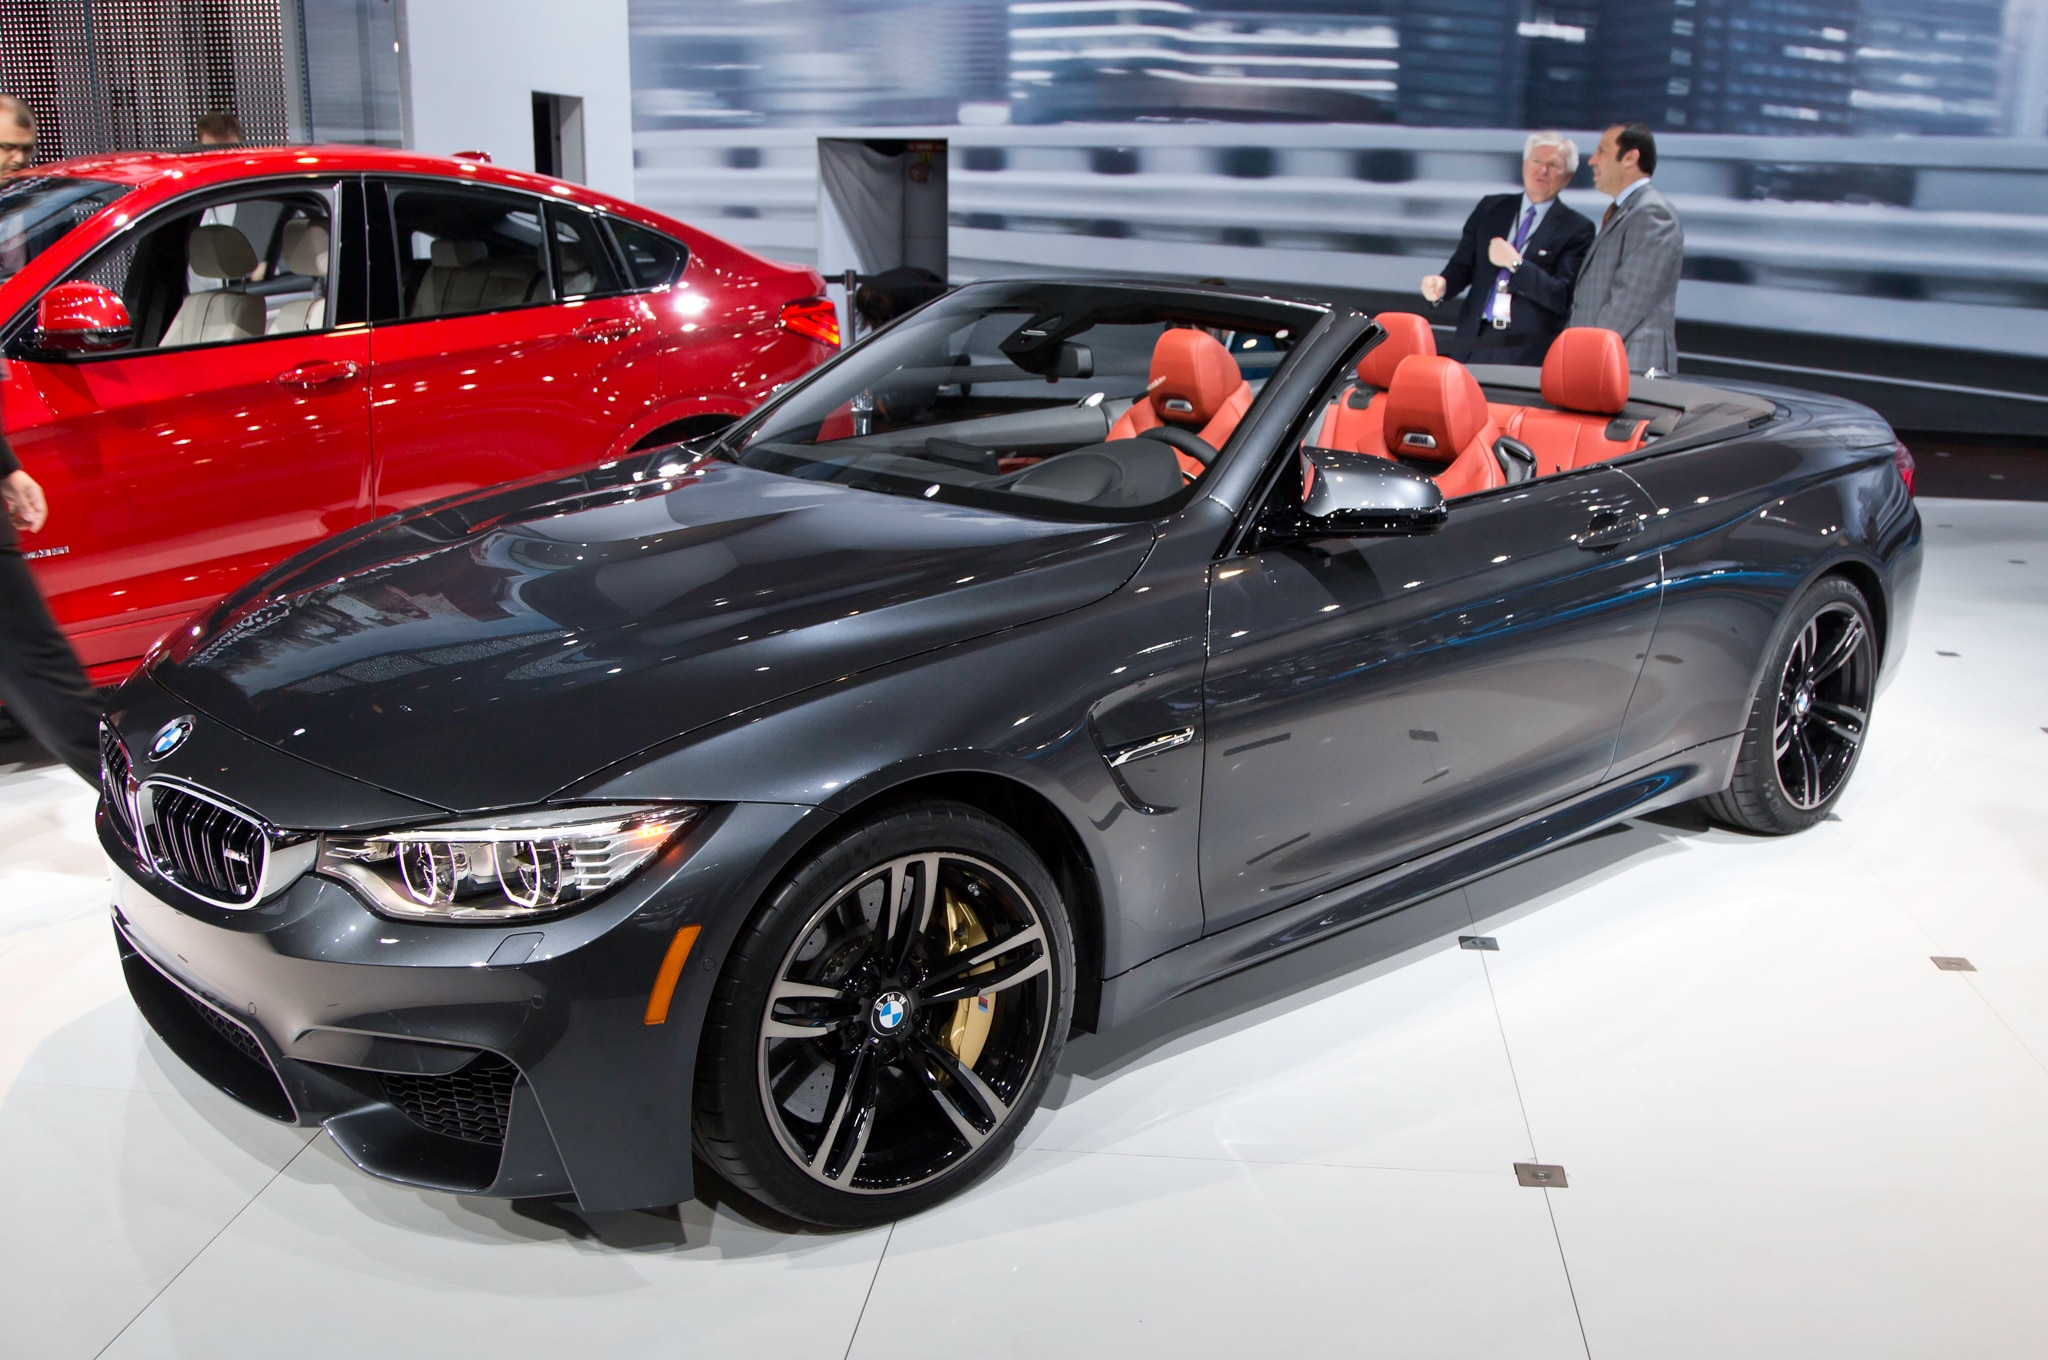 2015 bmw m4 convertible debuts at 2014 new york auto show automobile. Black Bedroom Furniture Sets. Home Design Ideas